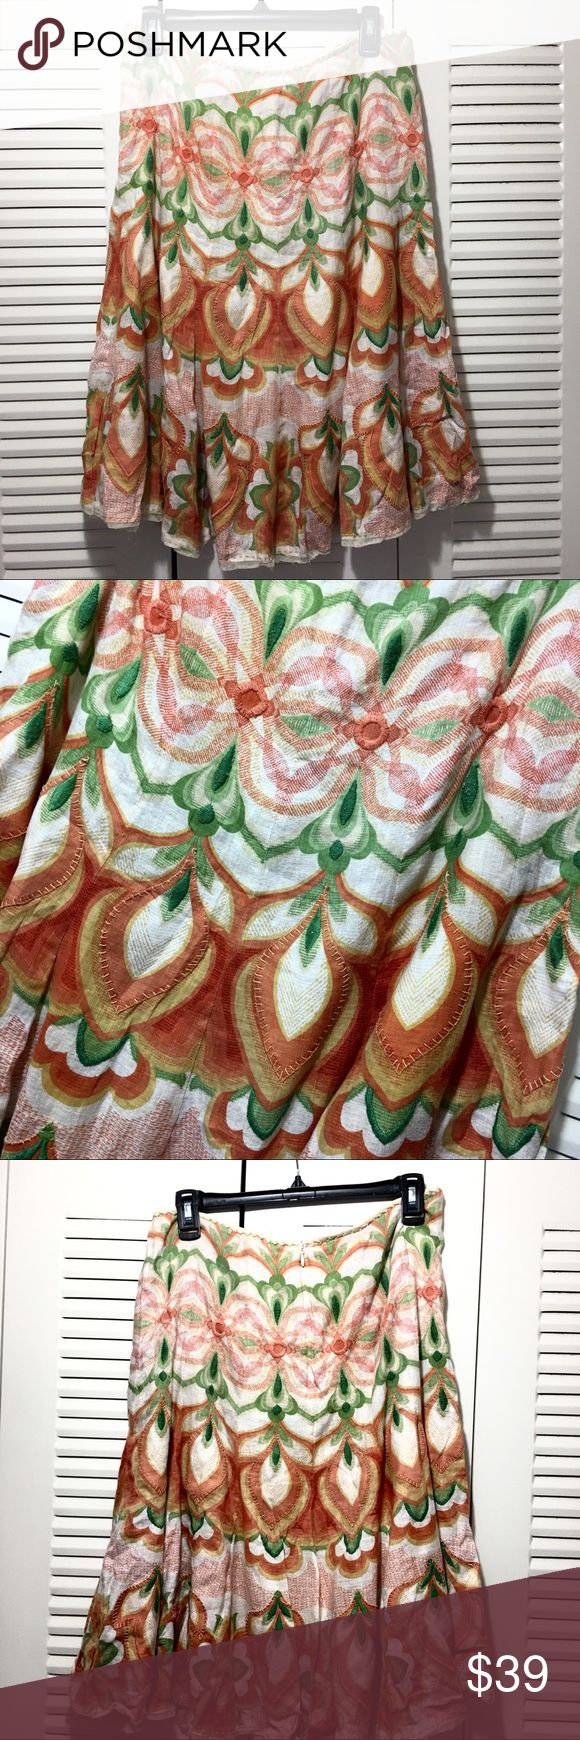 "Elie Tahari Boho Floral Linen Skirt Colorful lined linen skirt, peach, green, cream 3D floral embroidered pattern. No size tag. Waist 15.25"" length 25"" Elie Tahari Skirts A-Line or Full"